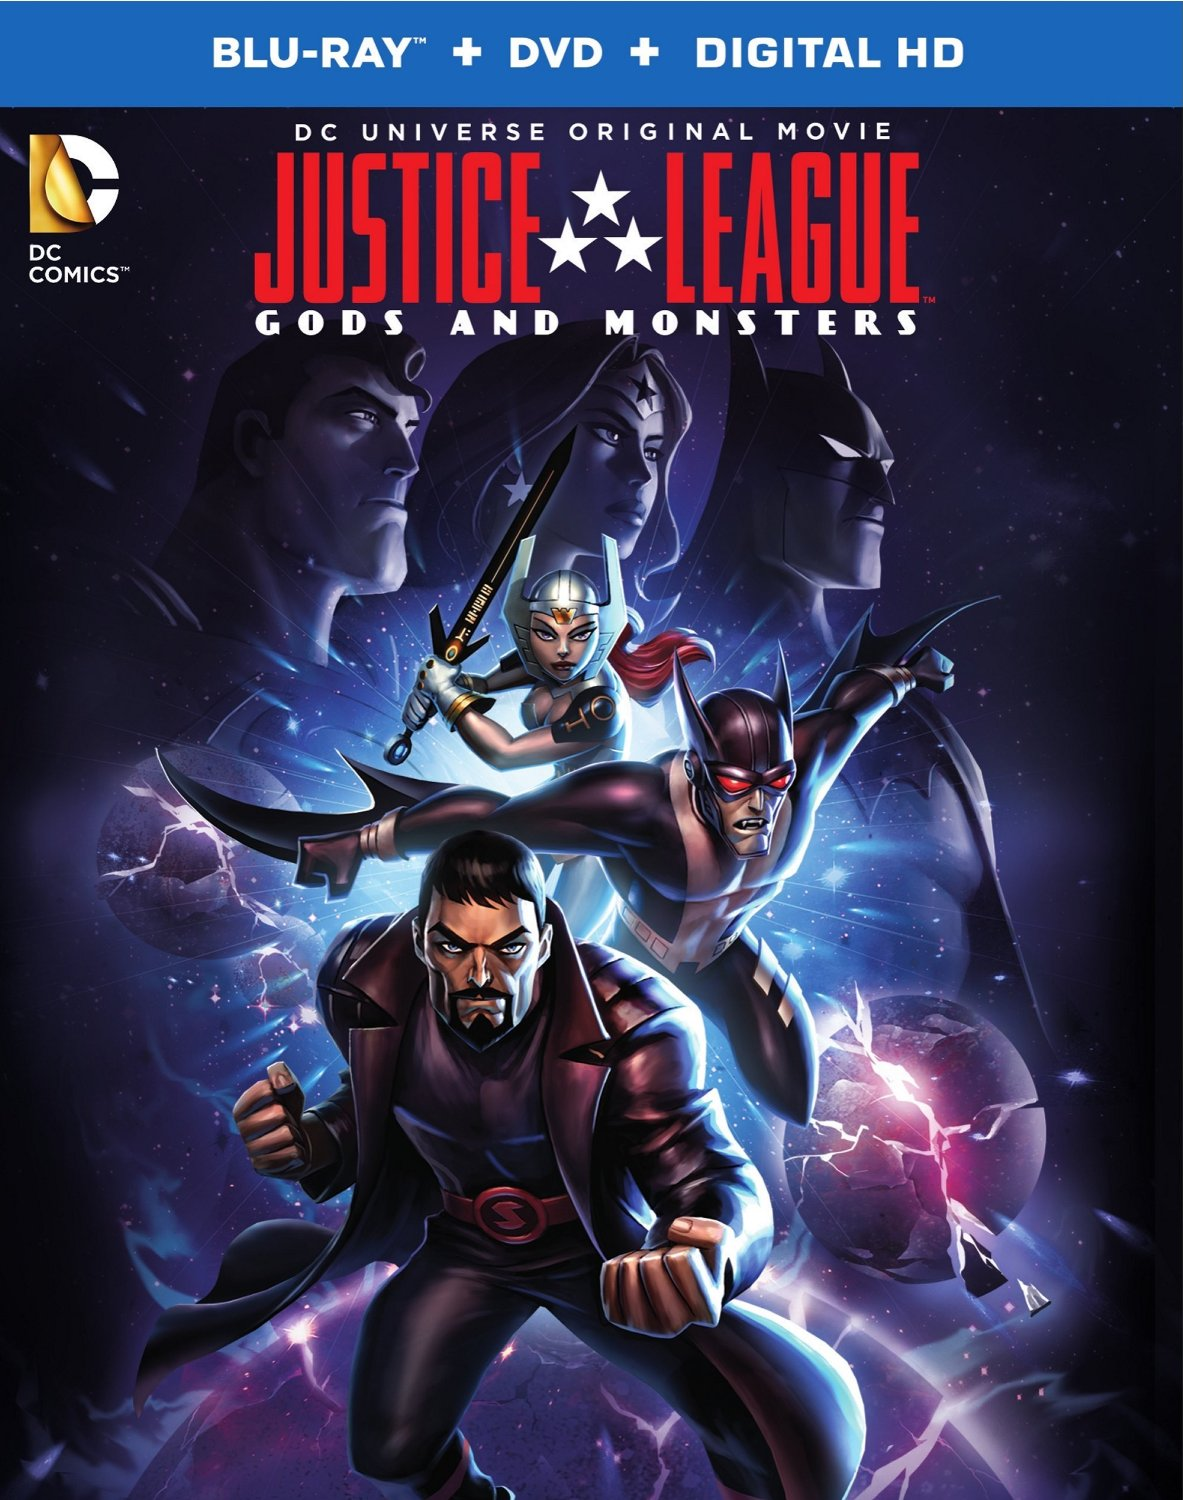 Justice League Gods And Monsters review: DC goes dark